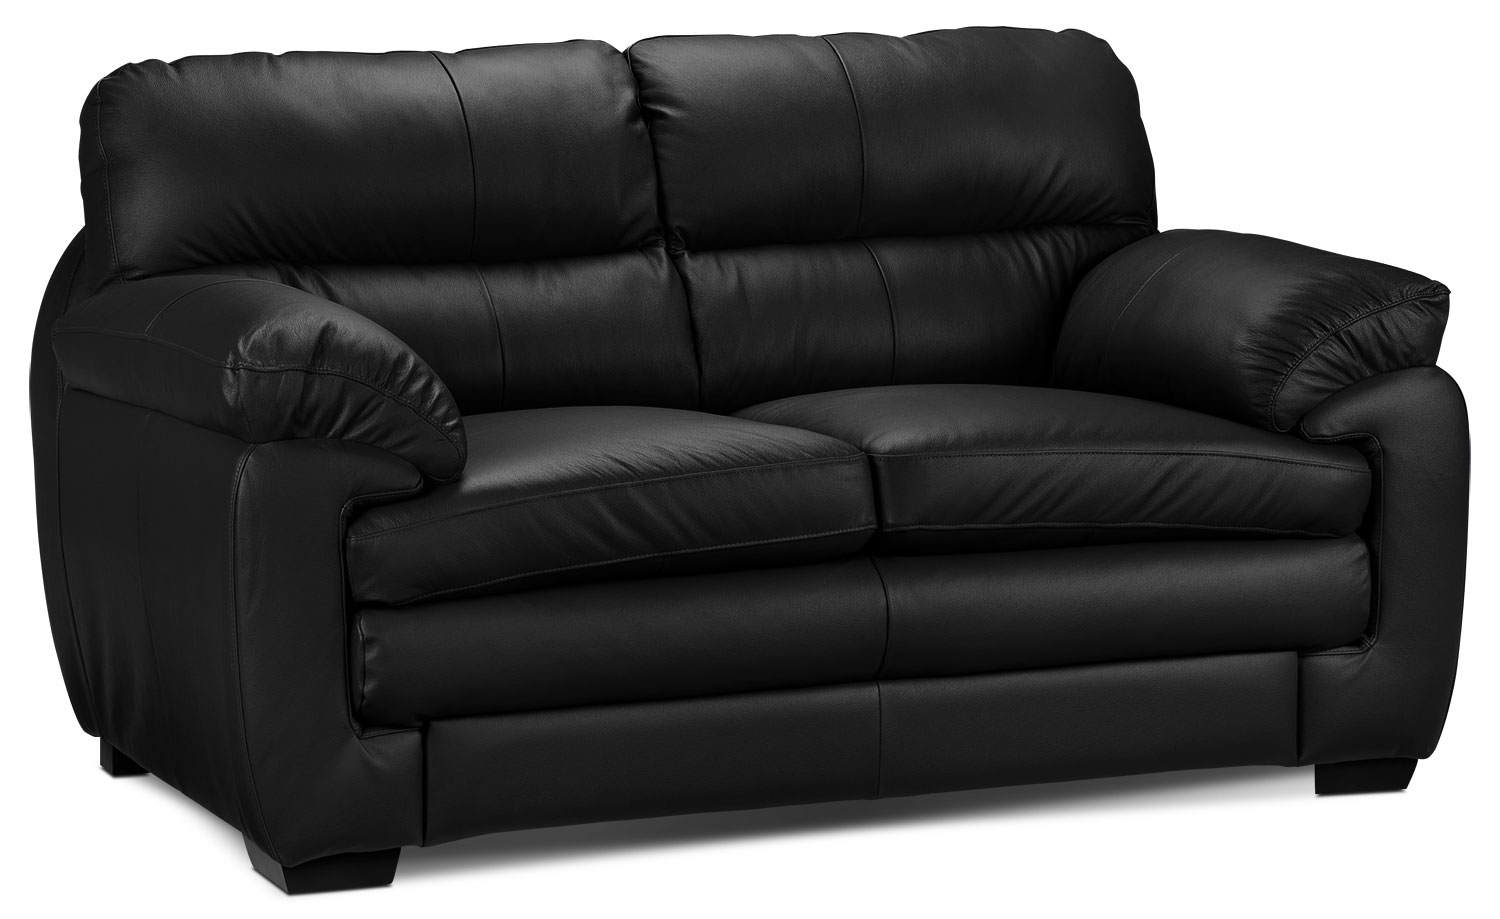 Living Room Furniture - Cambria Loveseat - Black